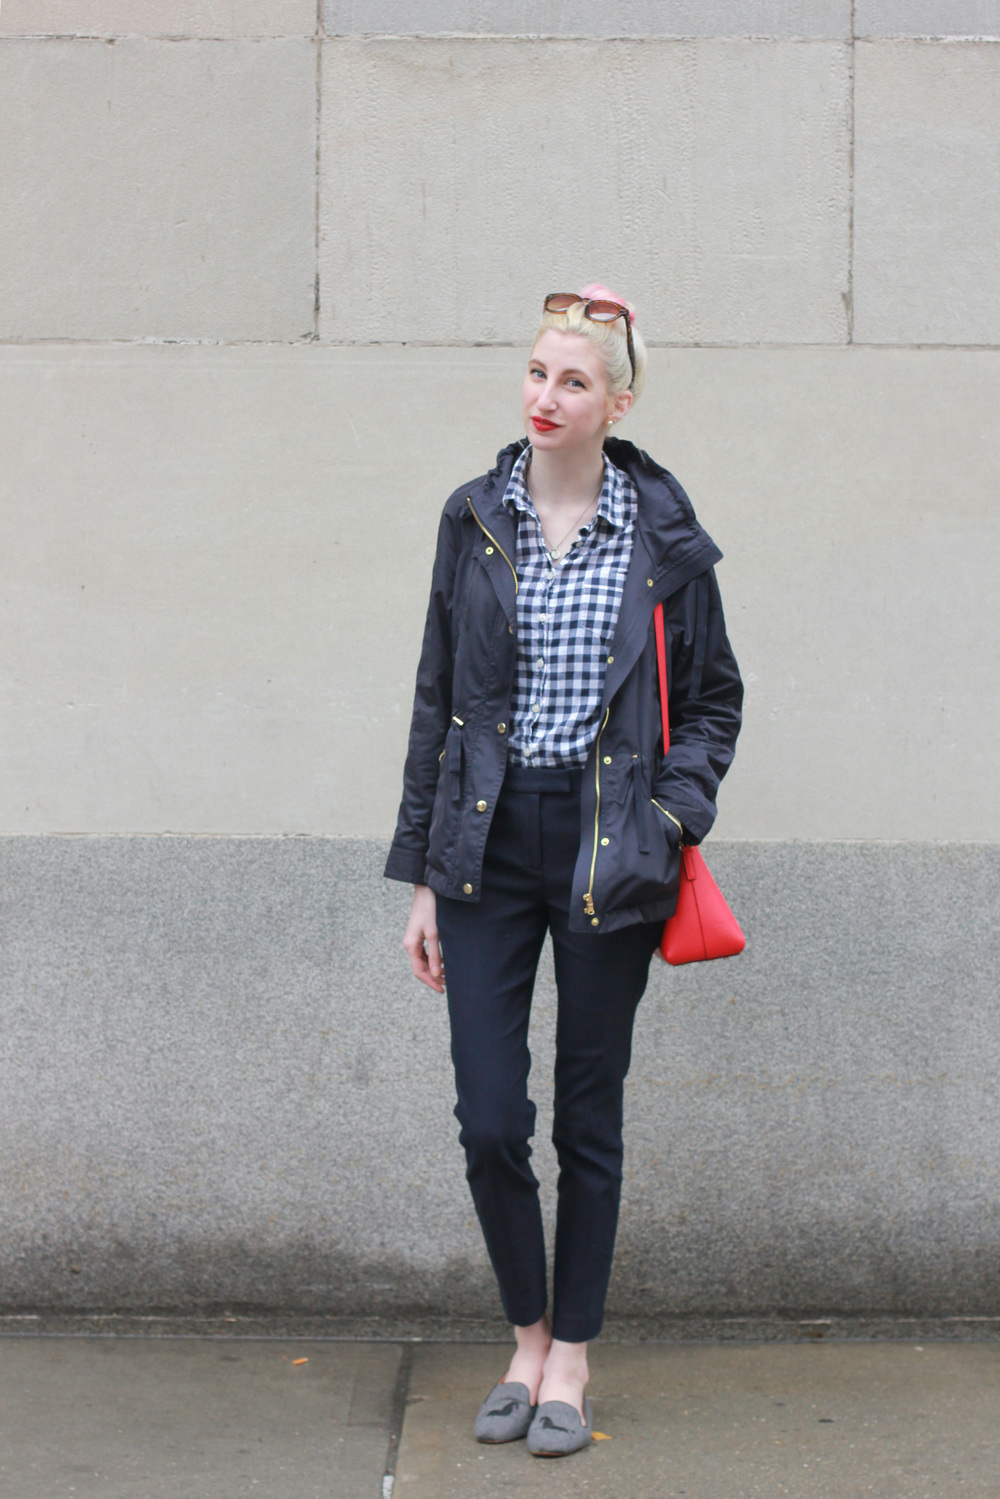 J.Crew Navy gingham button down shirt, LOFT navy raincoat, J.Crew navy ryder pants, J.Crew Factory addie horse loafers, Kate Spade Cedar Street Maise in bright poppy, NARS matte lip crayon in Cruella